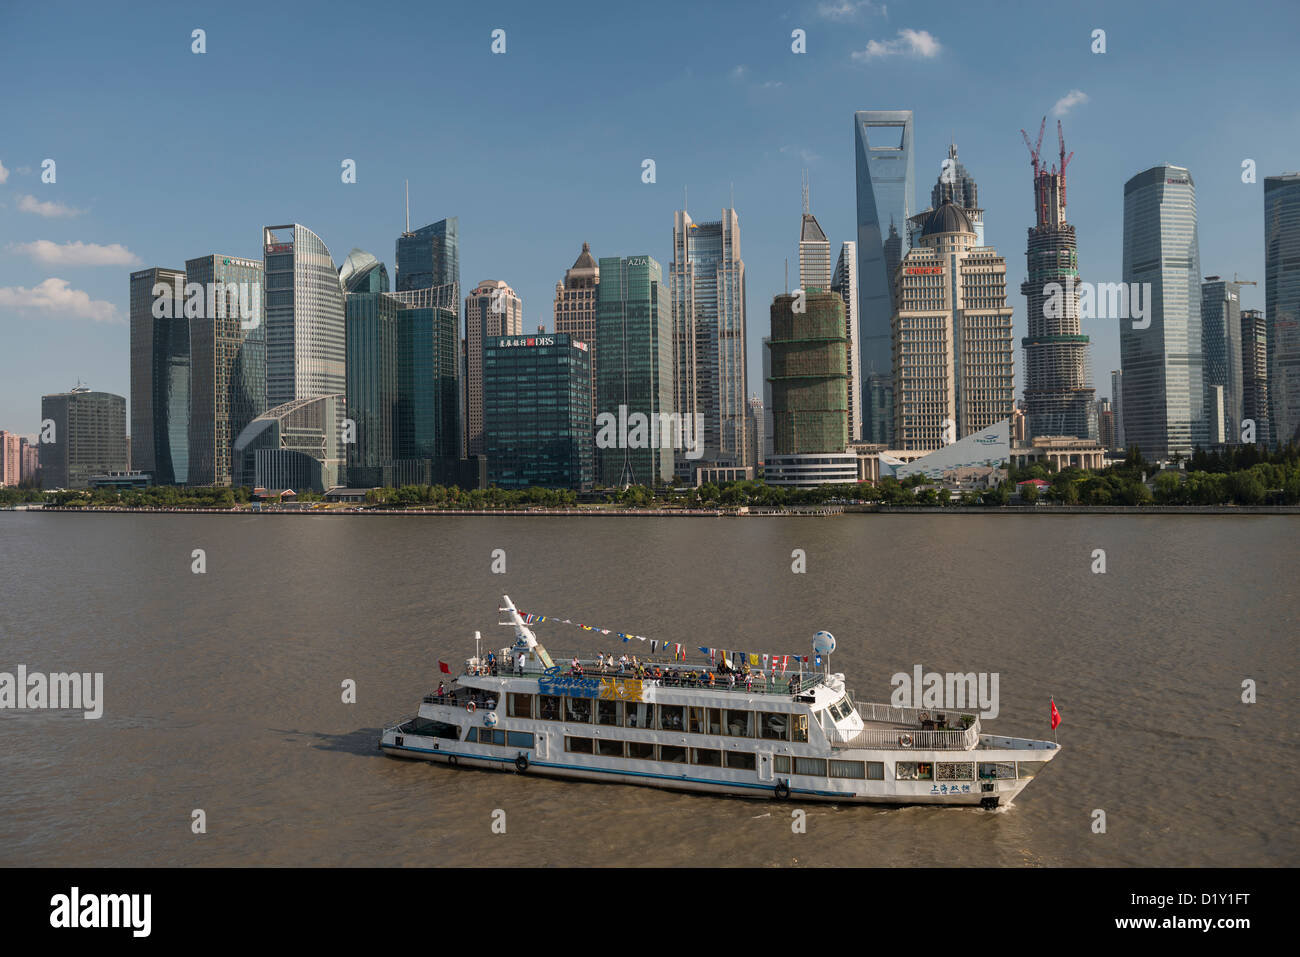 Huangpu River Cruise and view of Pudong Skyline from the Bund, Shanghai, China - Stock Image